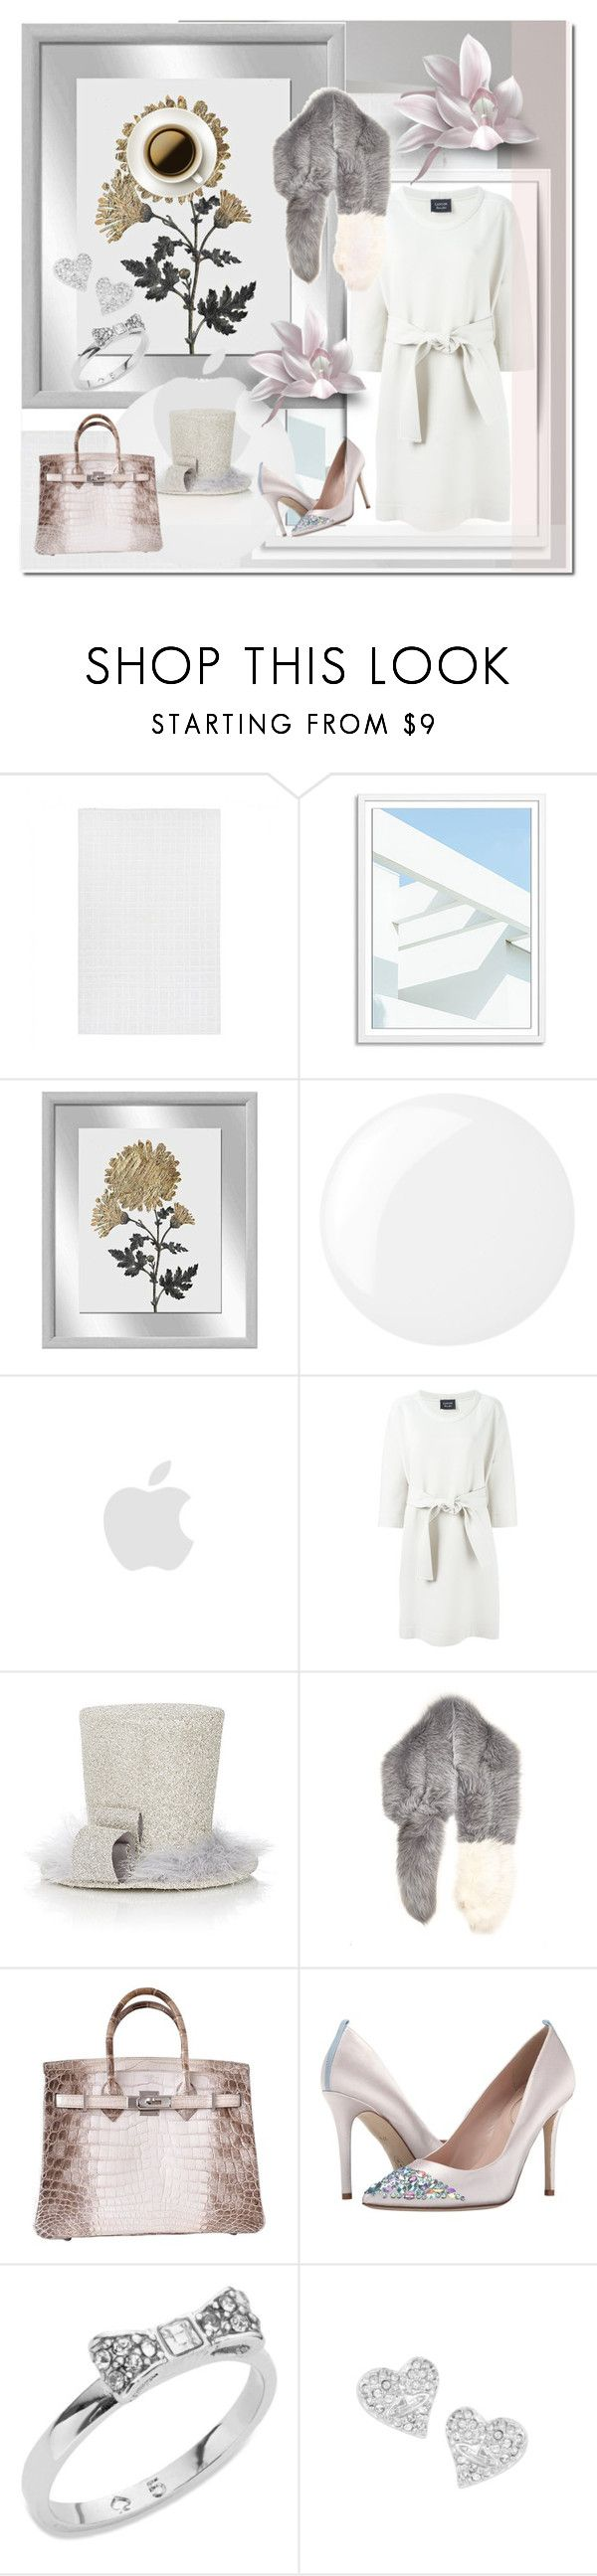 """Lanvin Belted Dress"" by ilona-828 ❤ liked on Polyvore featuring Universal Lighting and Decor, Essie, Lanvin, Sherri's Designs, Marni, Hermès, SJP, Kate Spade, Vivienne Westwood and dress"